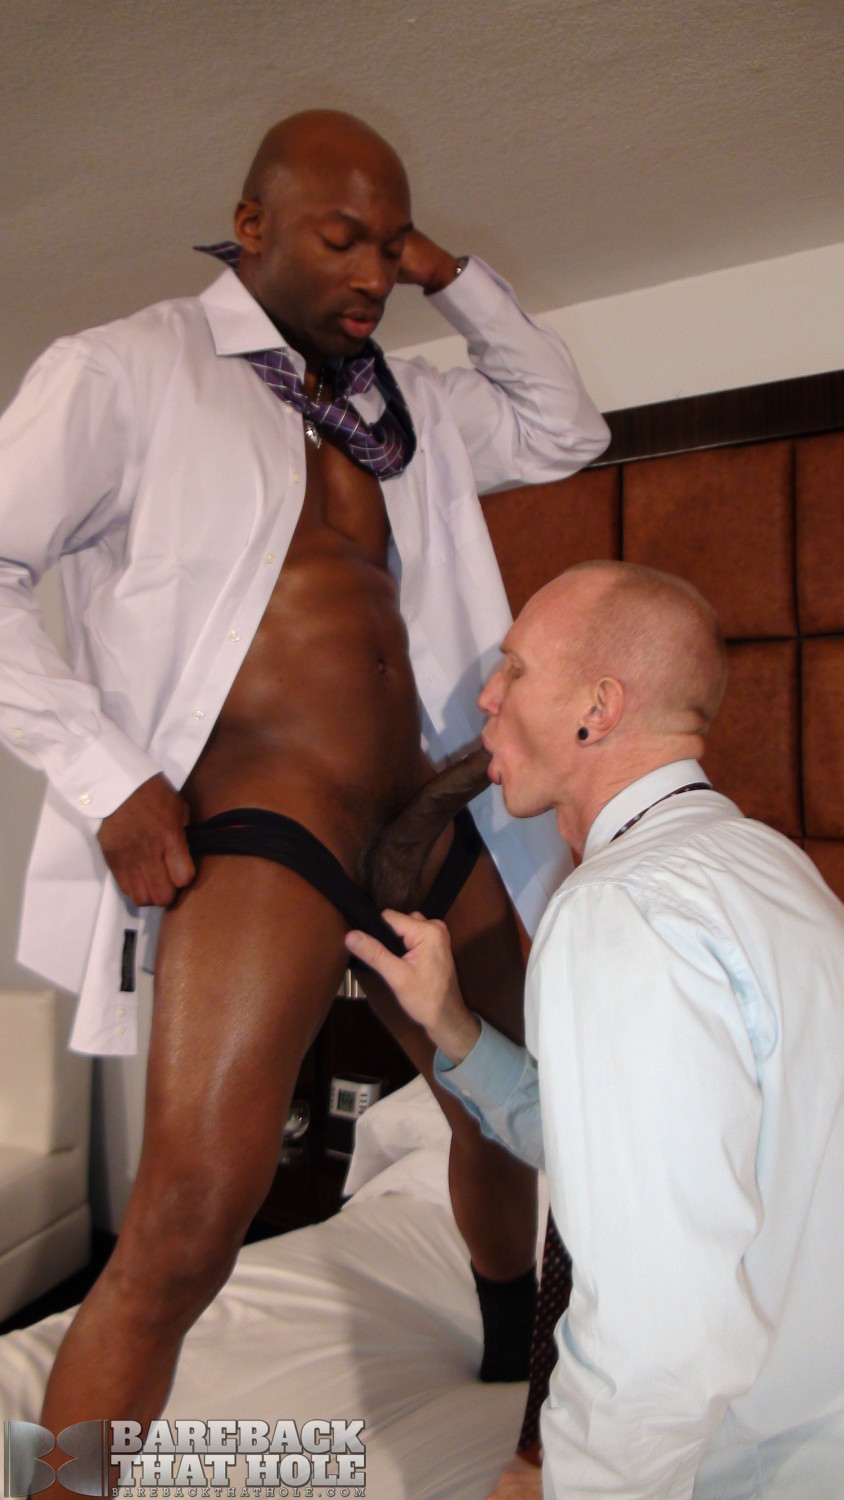 Bareback-That-Hole-Champ-Robinson-and-Mason-Garet-Interracial-Big-Black-Cock-Bareback-Amateur-Gay-Porn-07 Black Corporate Executive Barebacks His White Co-Worker